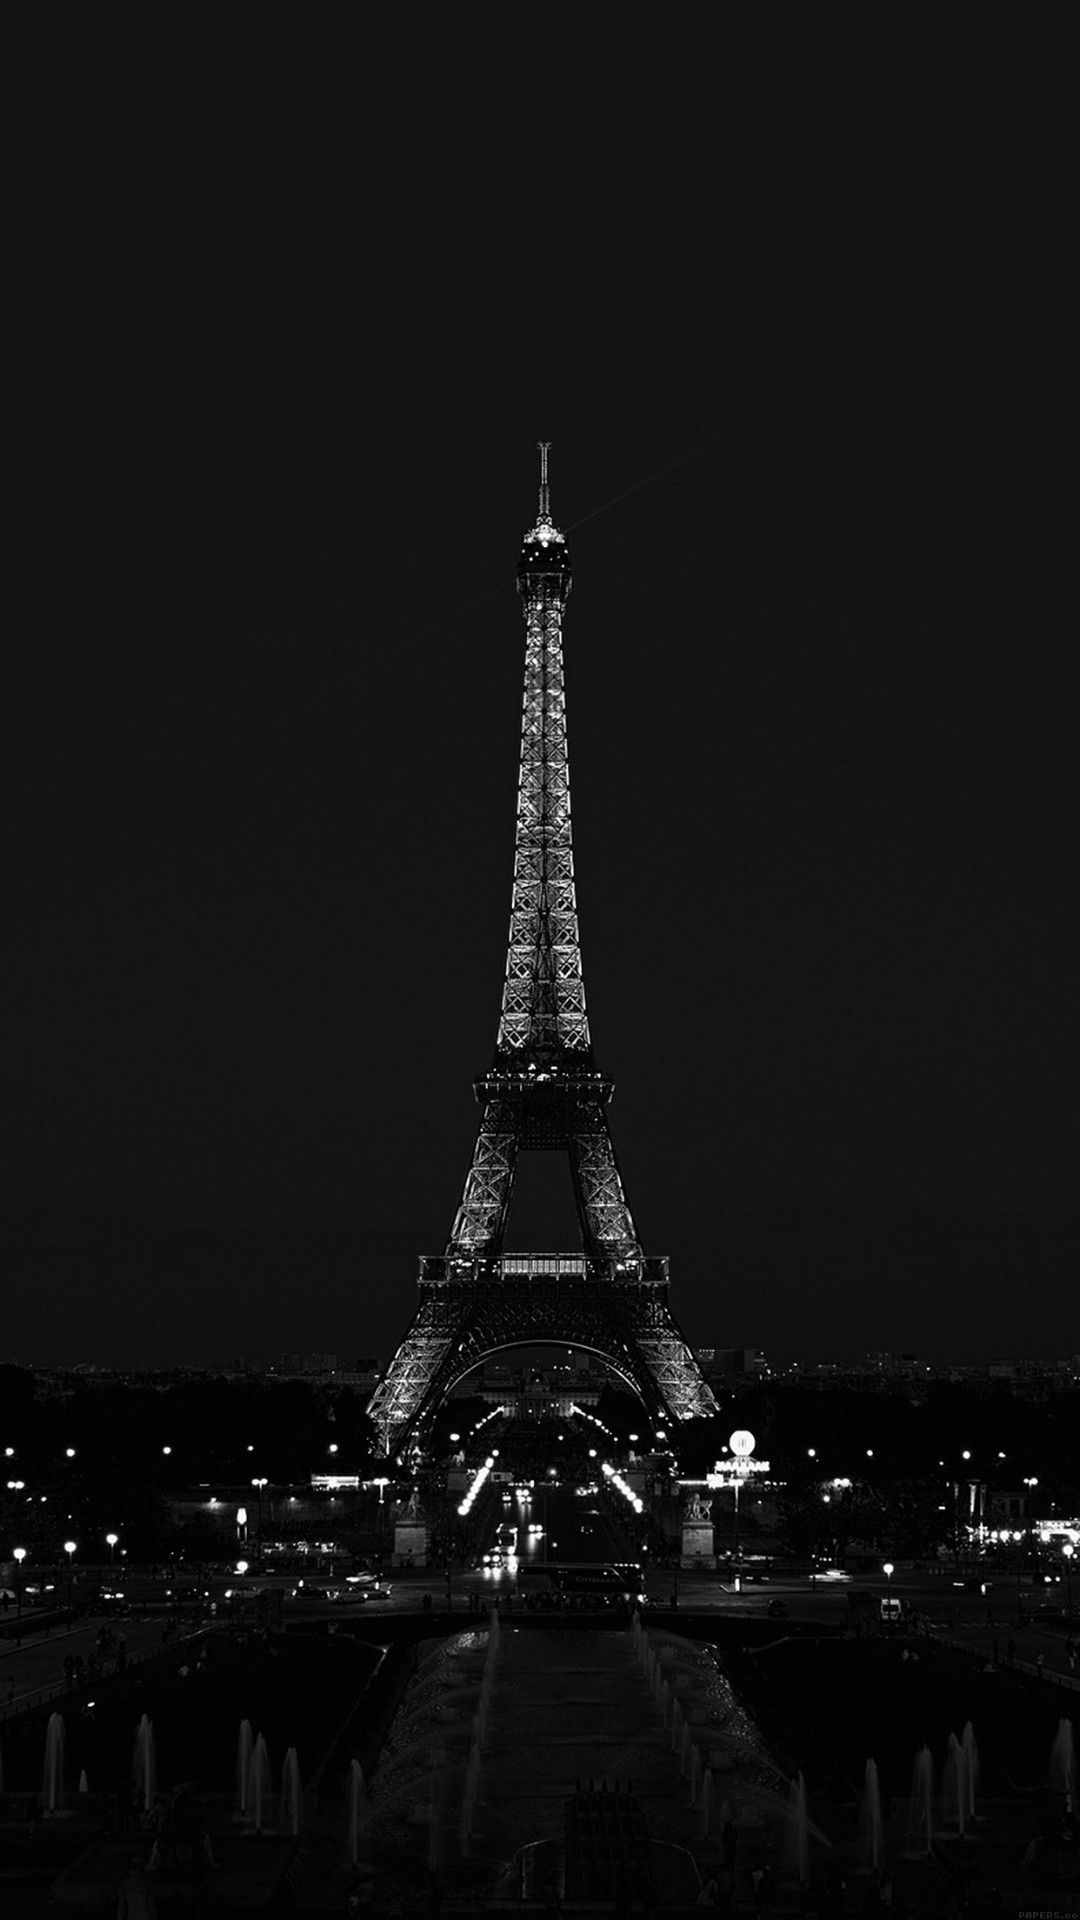 paris iphone 5 wallpaper - photo #16